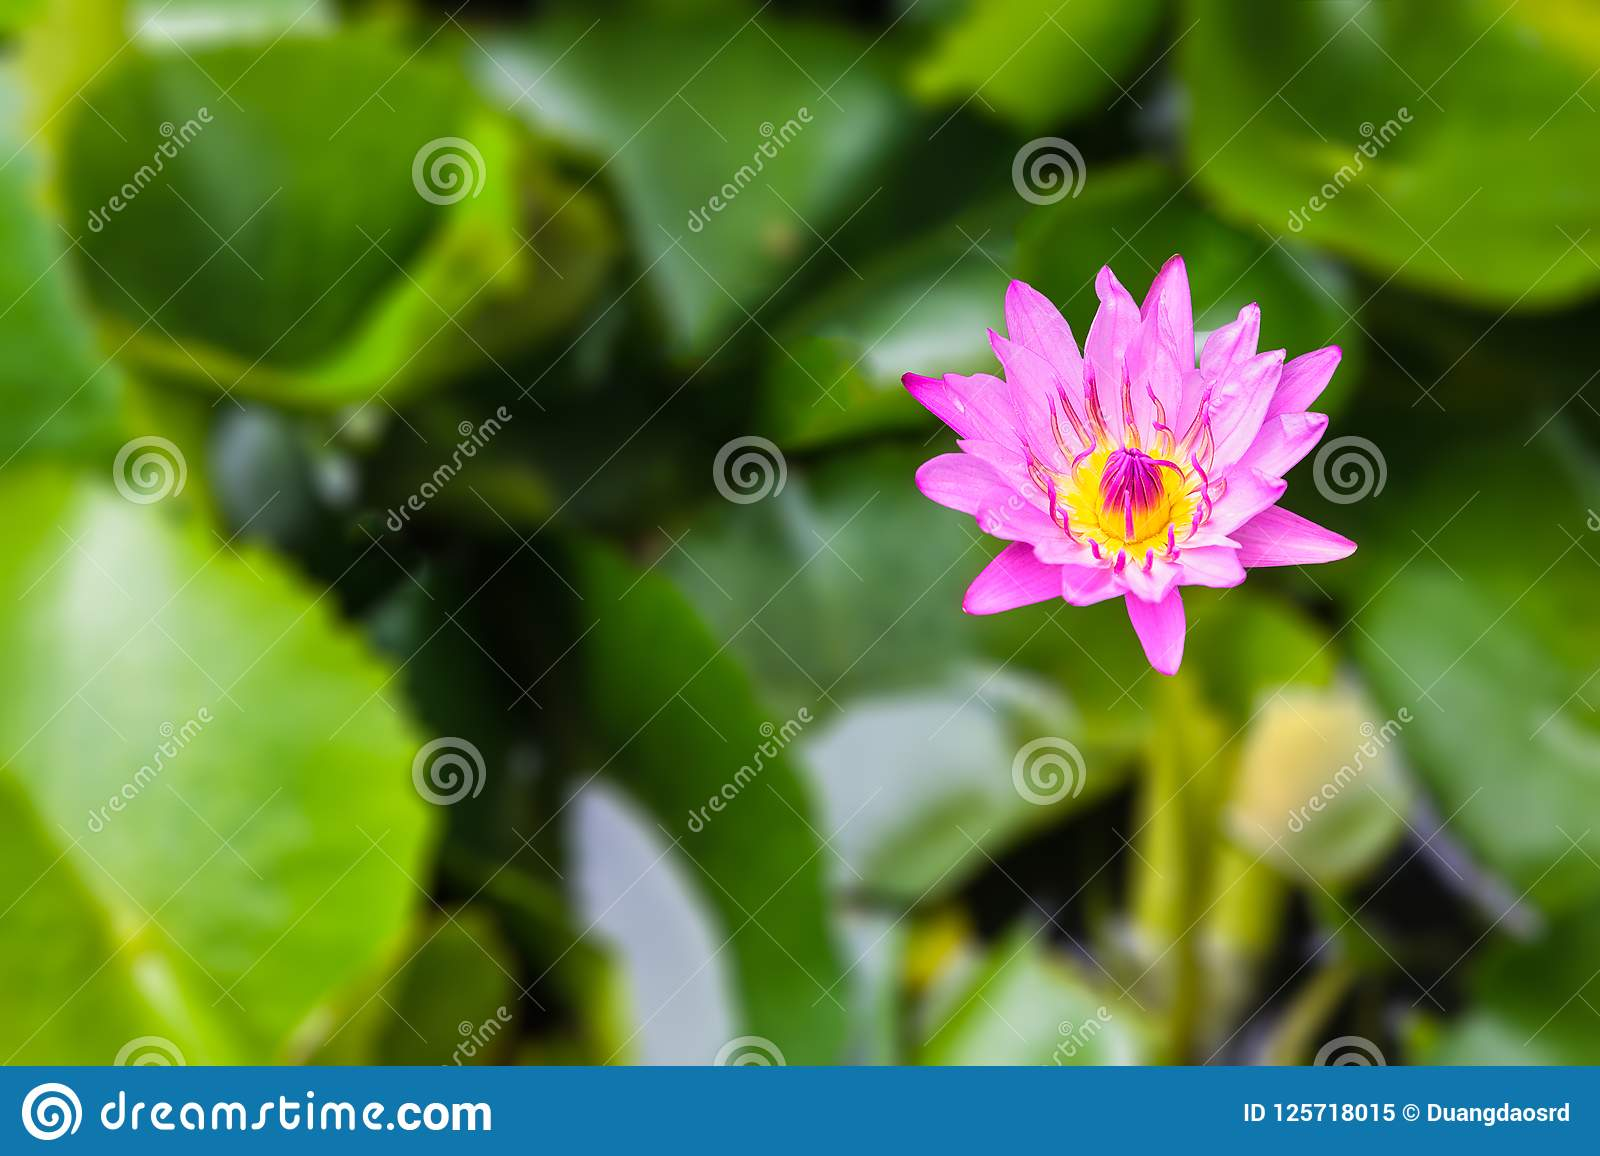 Nymphaea stellata Wild or water lily or lotus is aquatic plant a